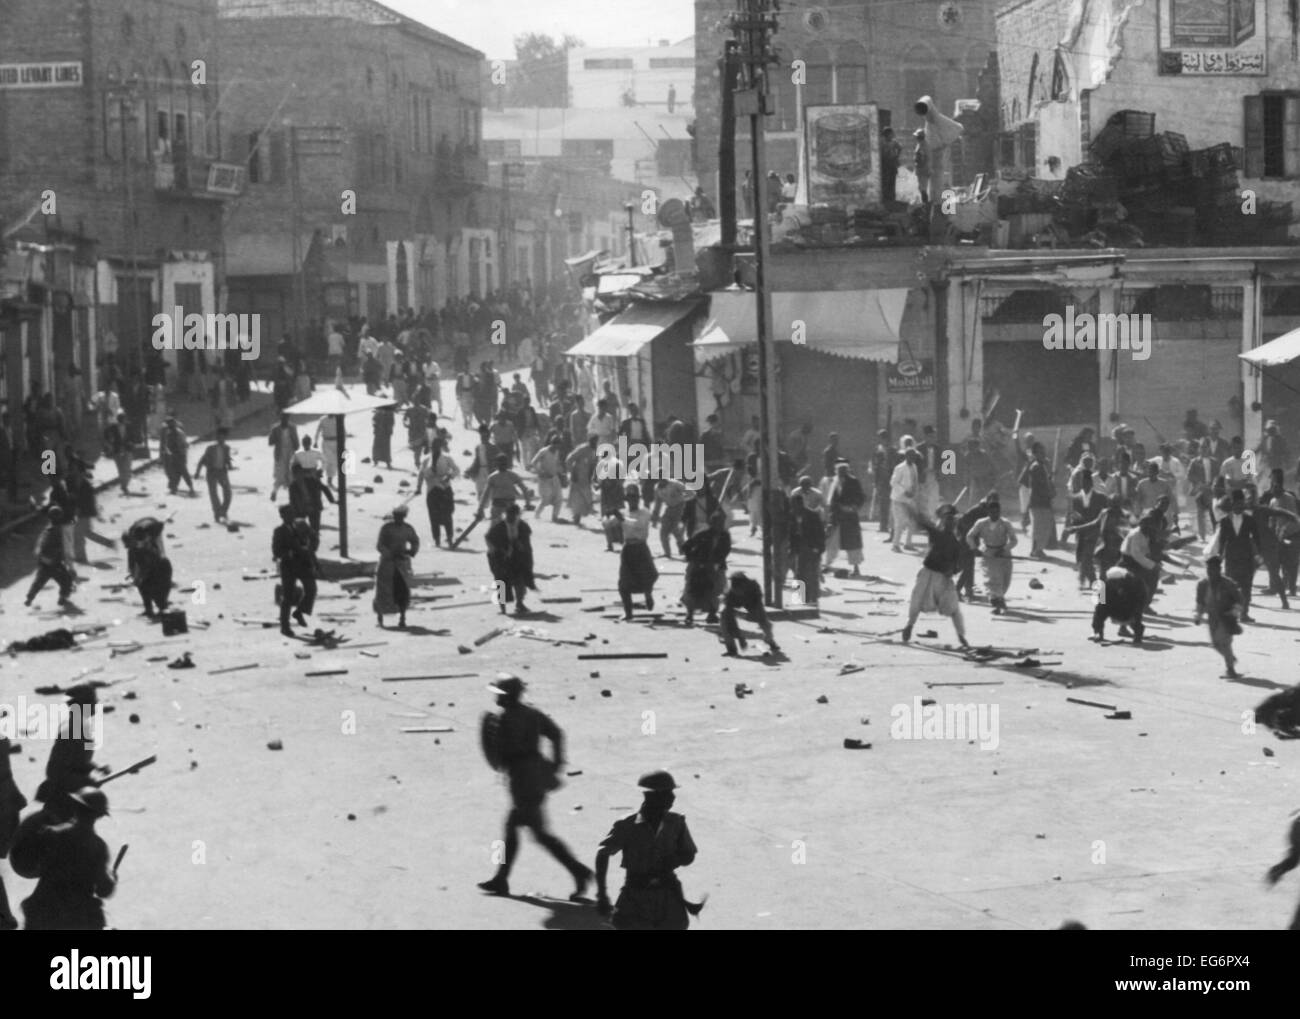 Riot at Jerusalem's Jaffa Gate, October 1933. Palestinian Arabs resisted British colonial rule and mass Jewish - Stock Image